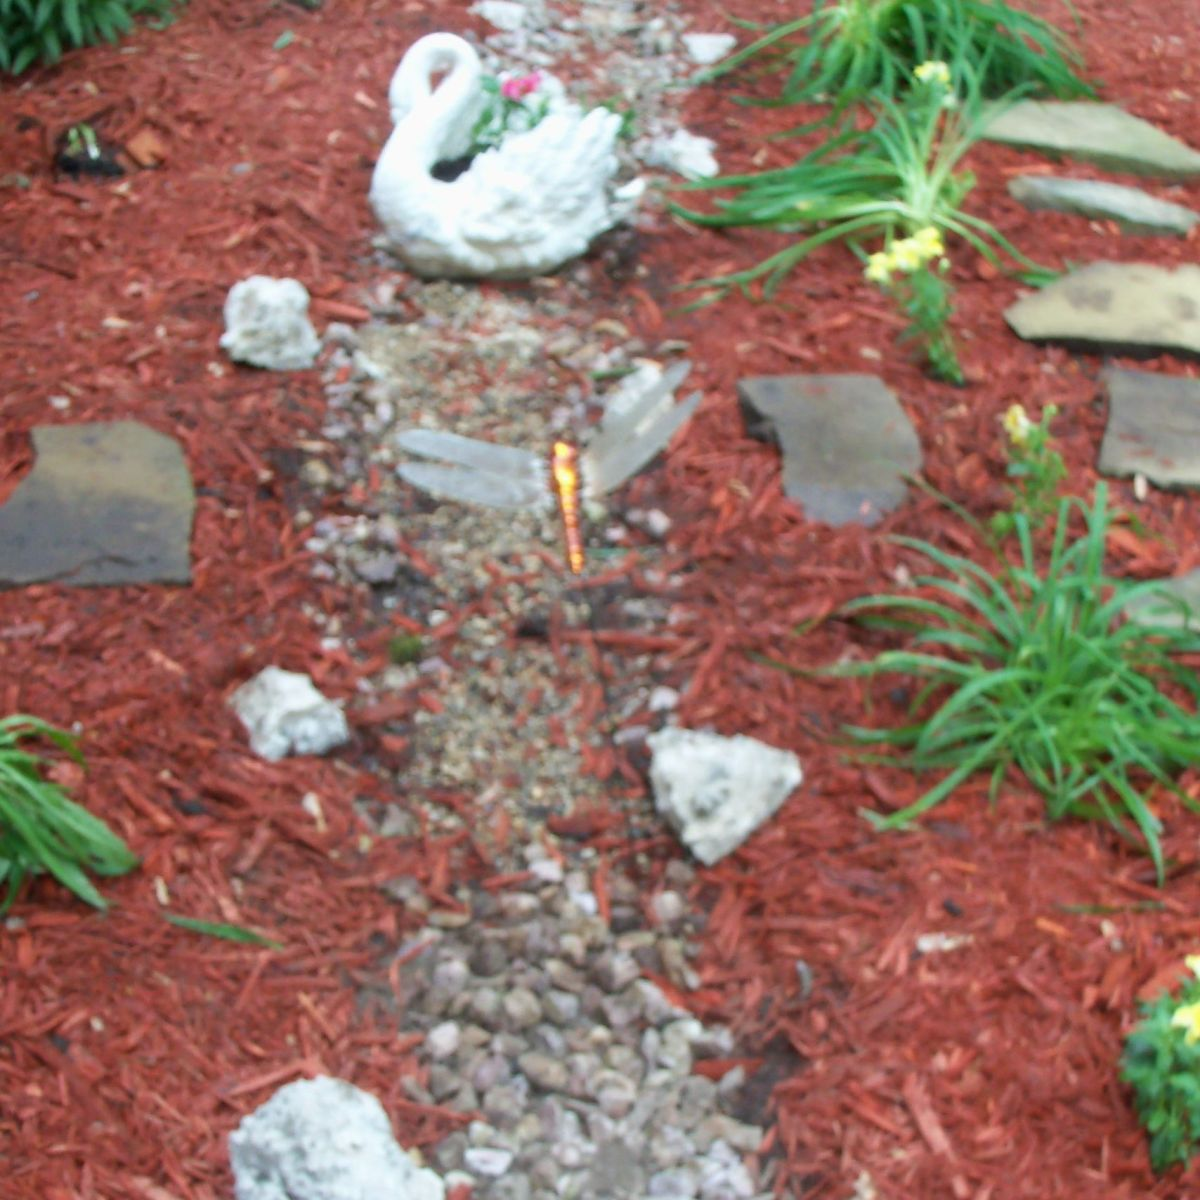 added river rock, big pieces of brocken concrete and transplanted some day lilies and black-eyed-susans- added a swan planter